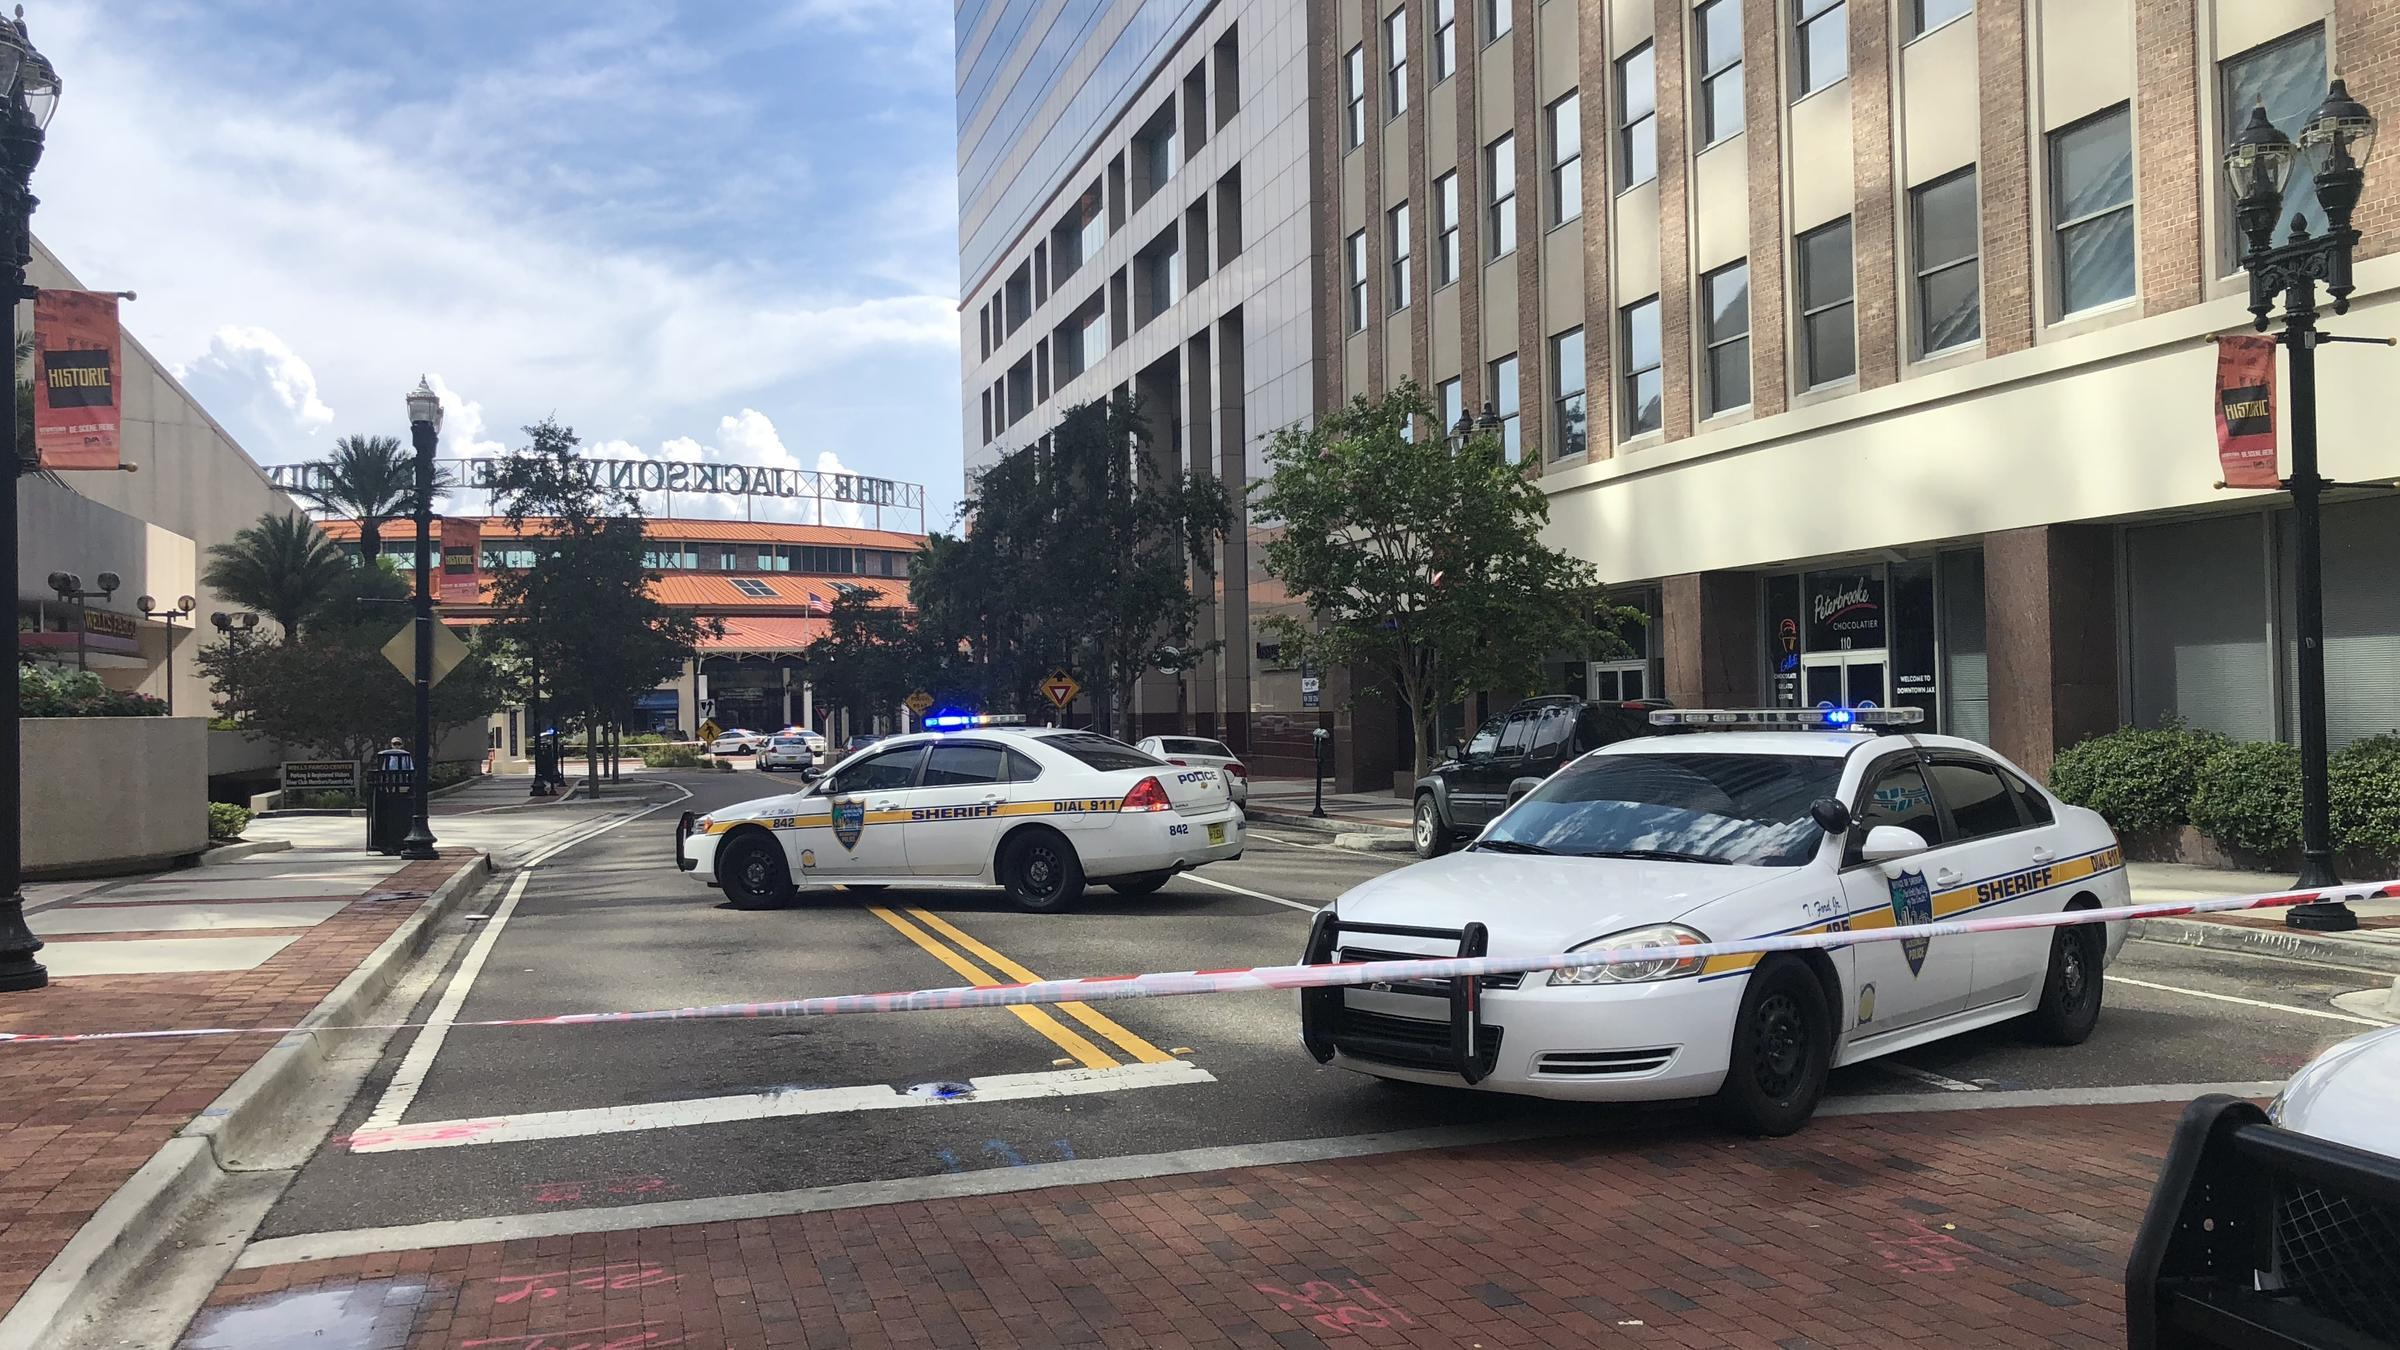 The Jacksonville Sheriff's Office blocked off the area around the Landing Sunday to secure the scene of a mass shooting